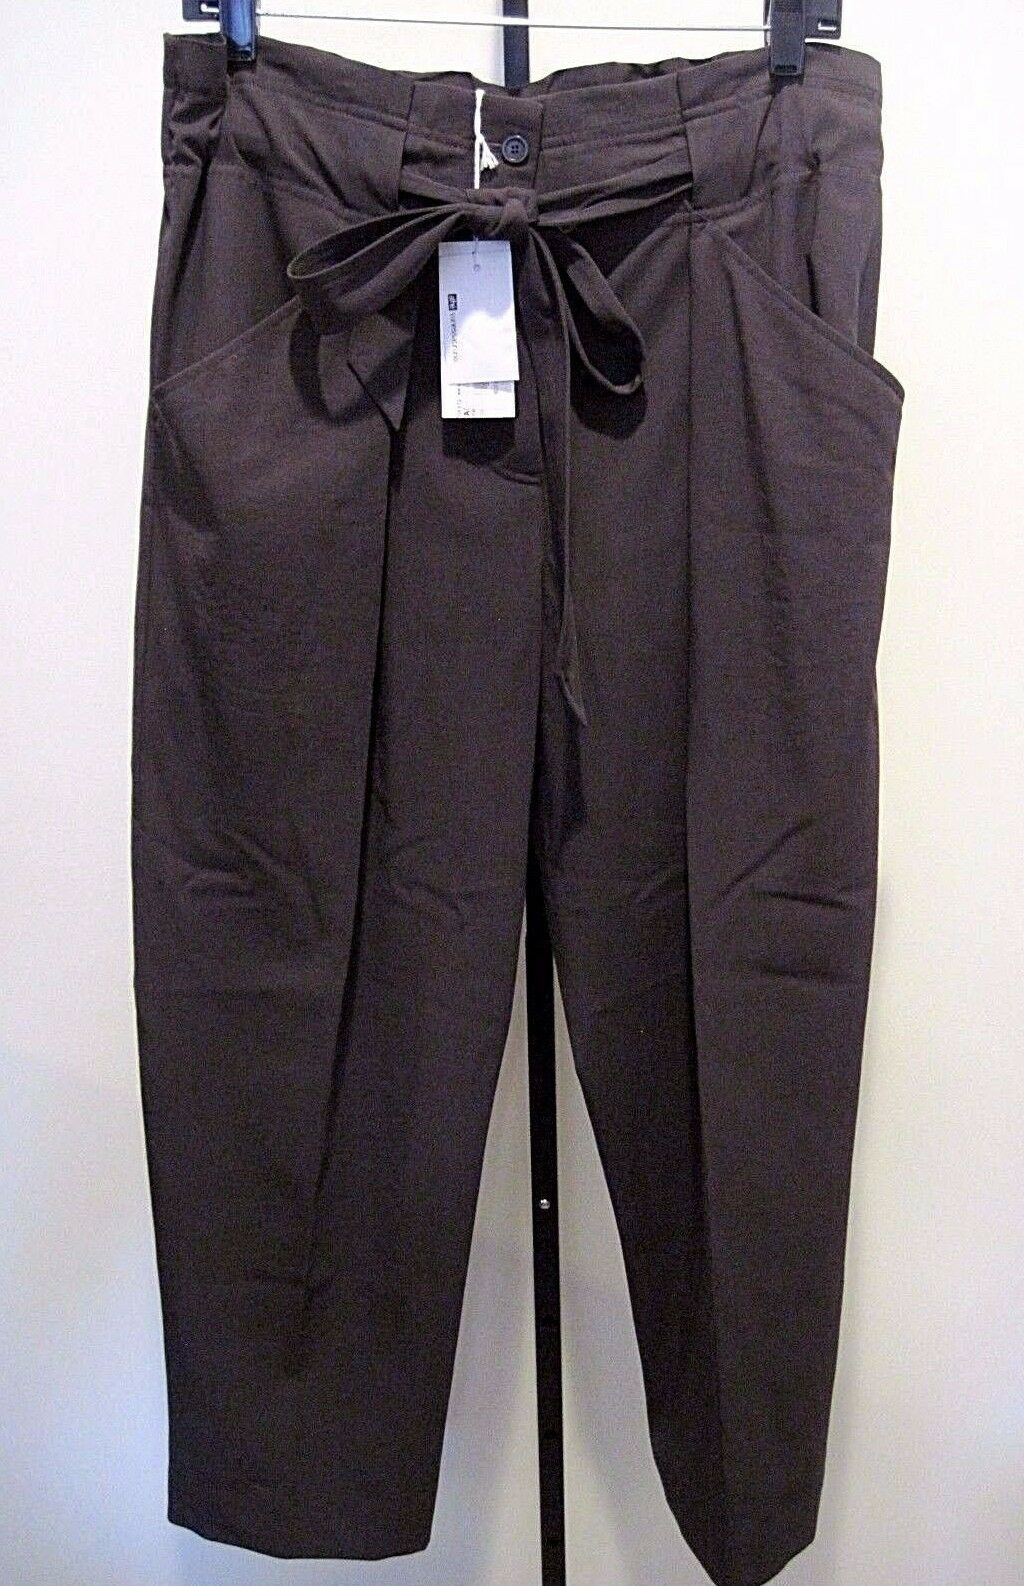 Athe Vanessa Bruno Tie Cropped Brown Wool Cotton Pants Size 40, NWT